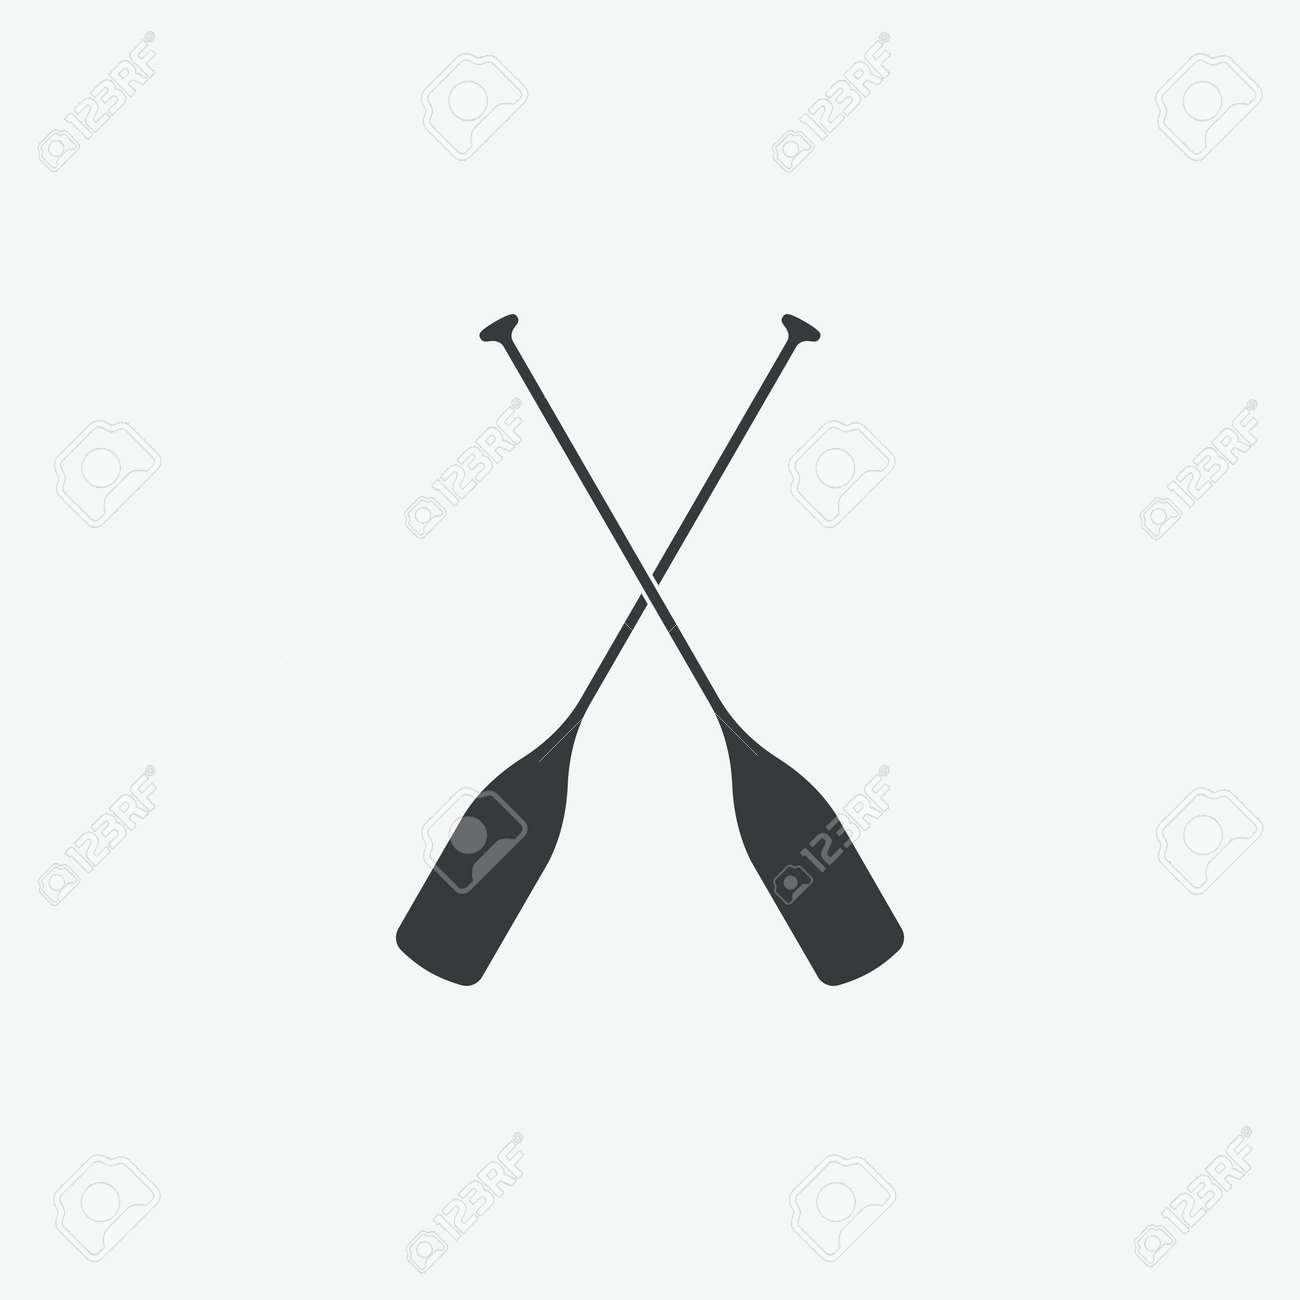 Paddle Boat Oars Vector Icon Stock